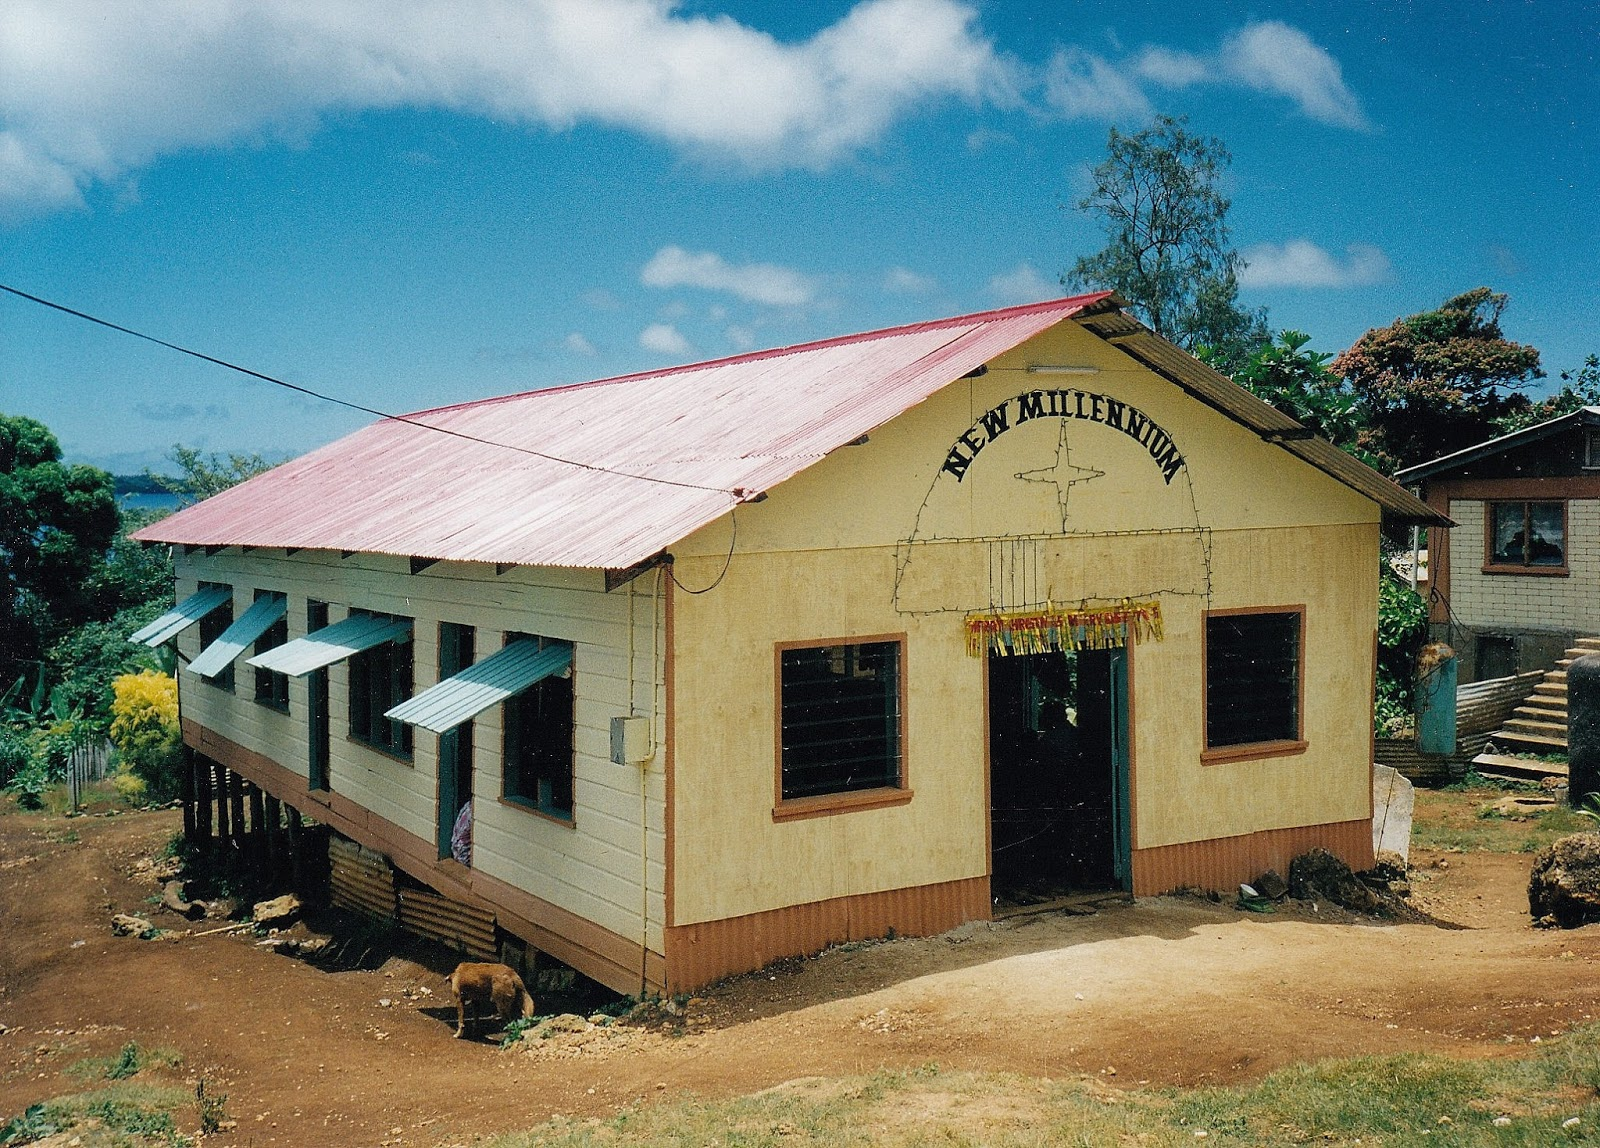 Tonga has churches great and small